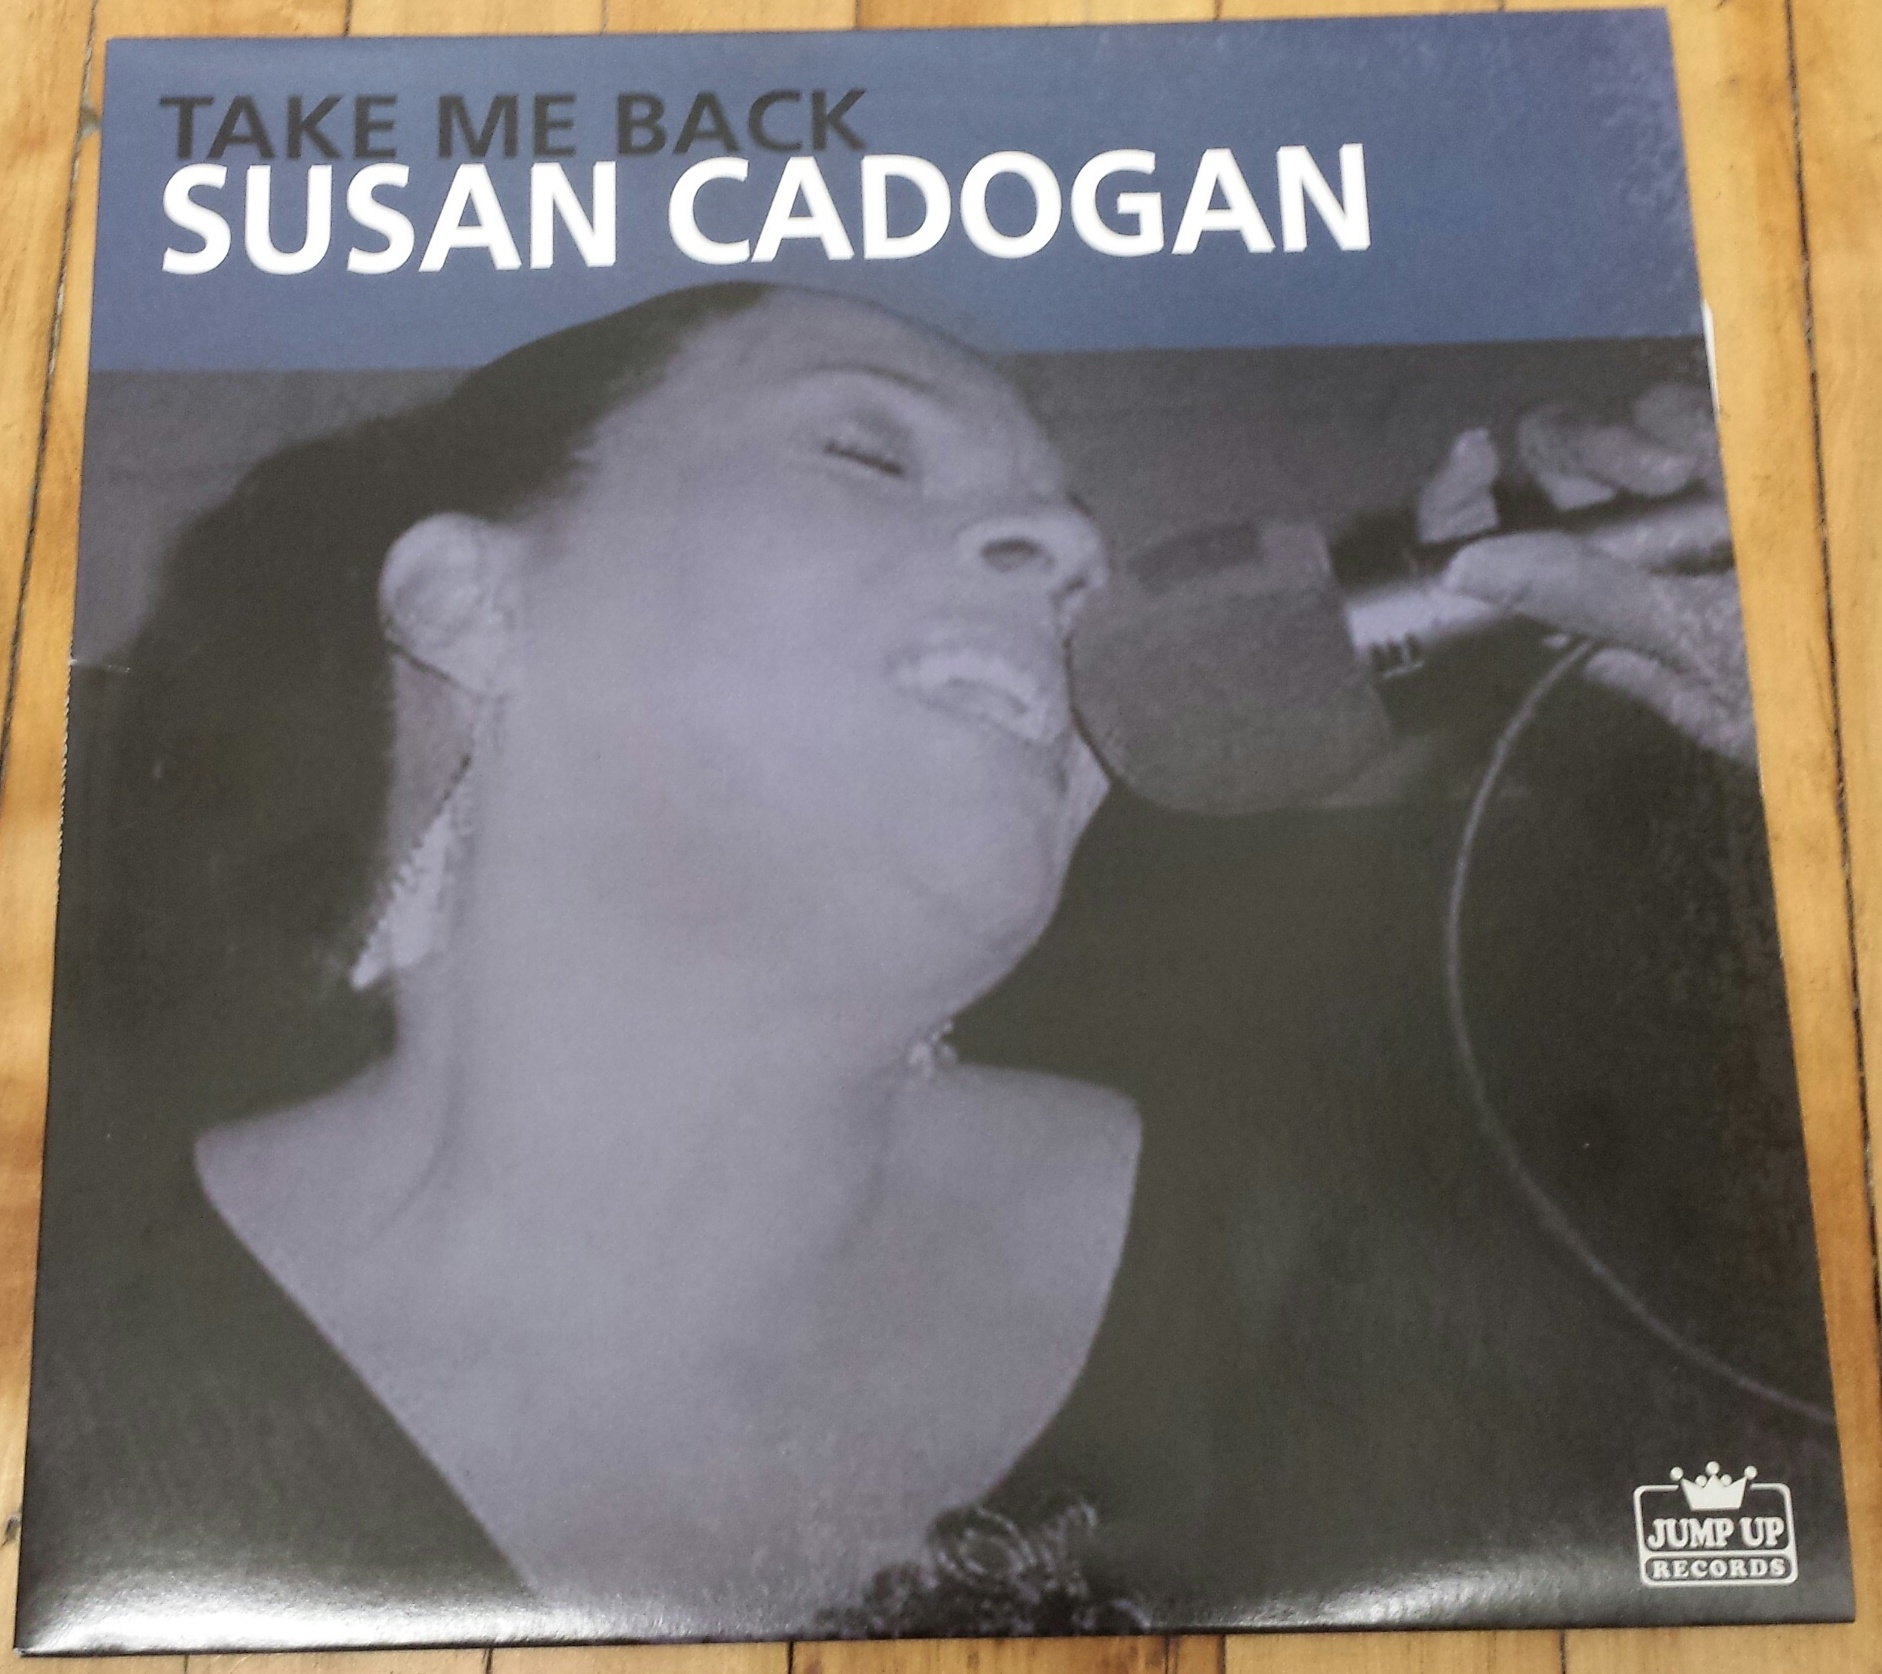 Susan Cadogan/TAKE ME BACK (EXPANDED) LP